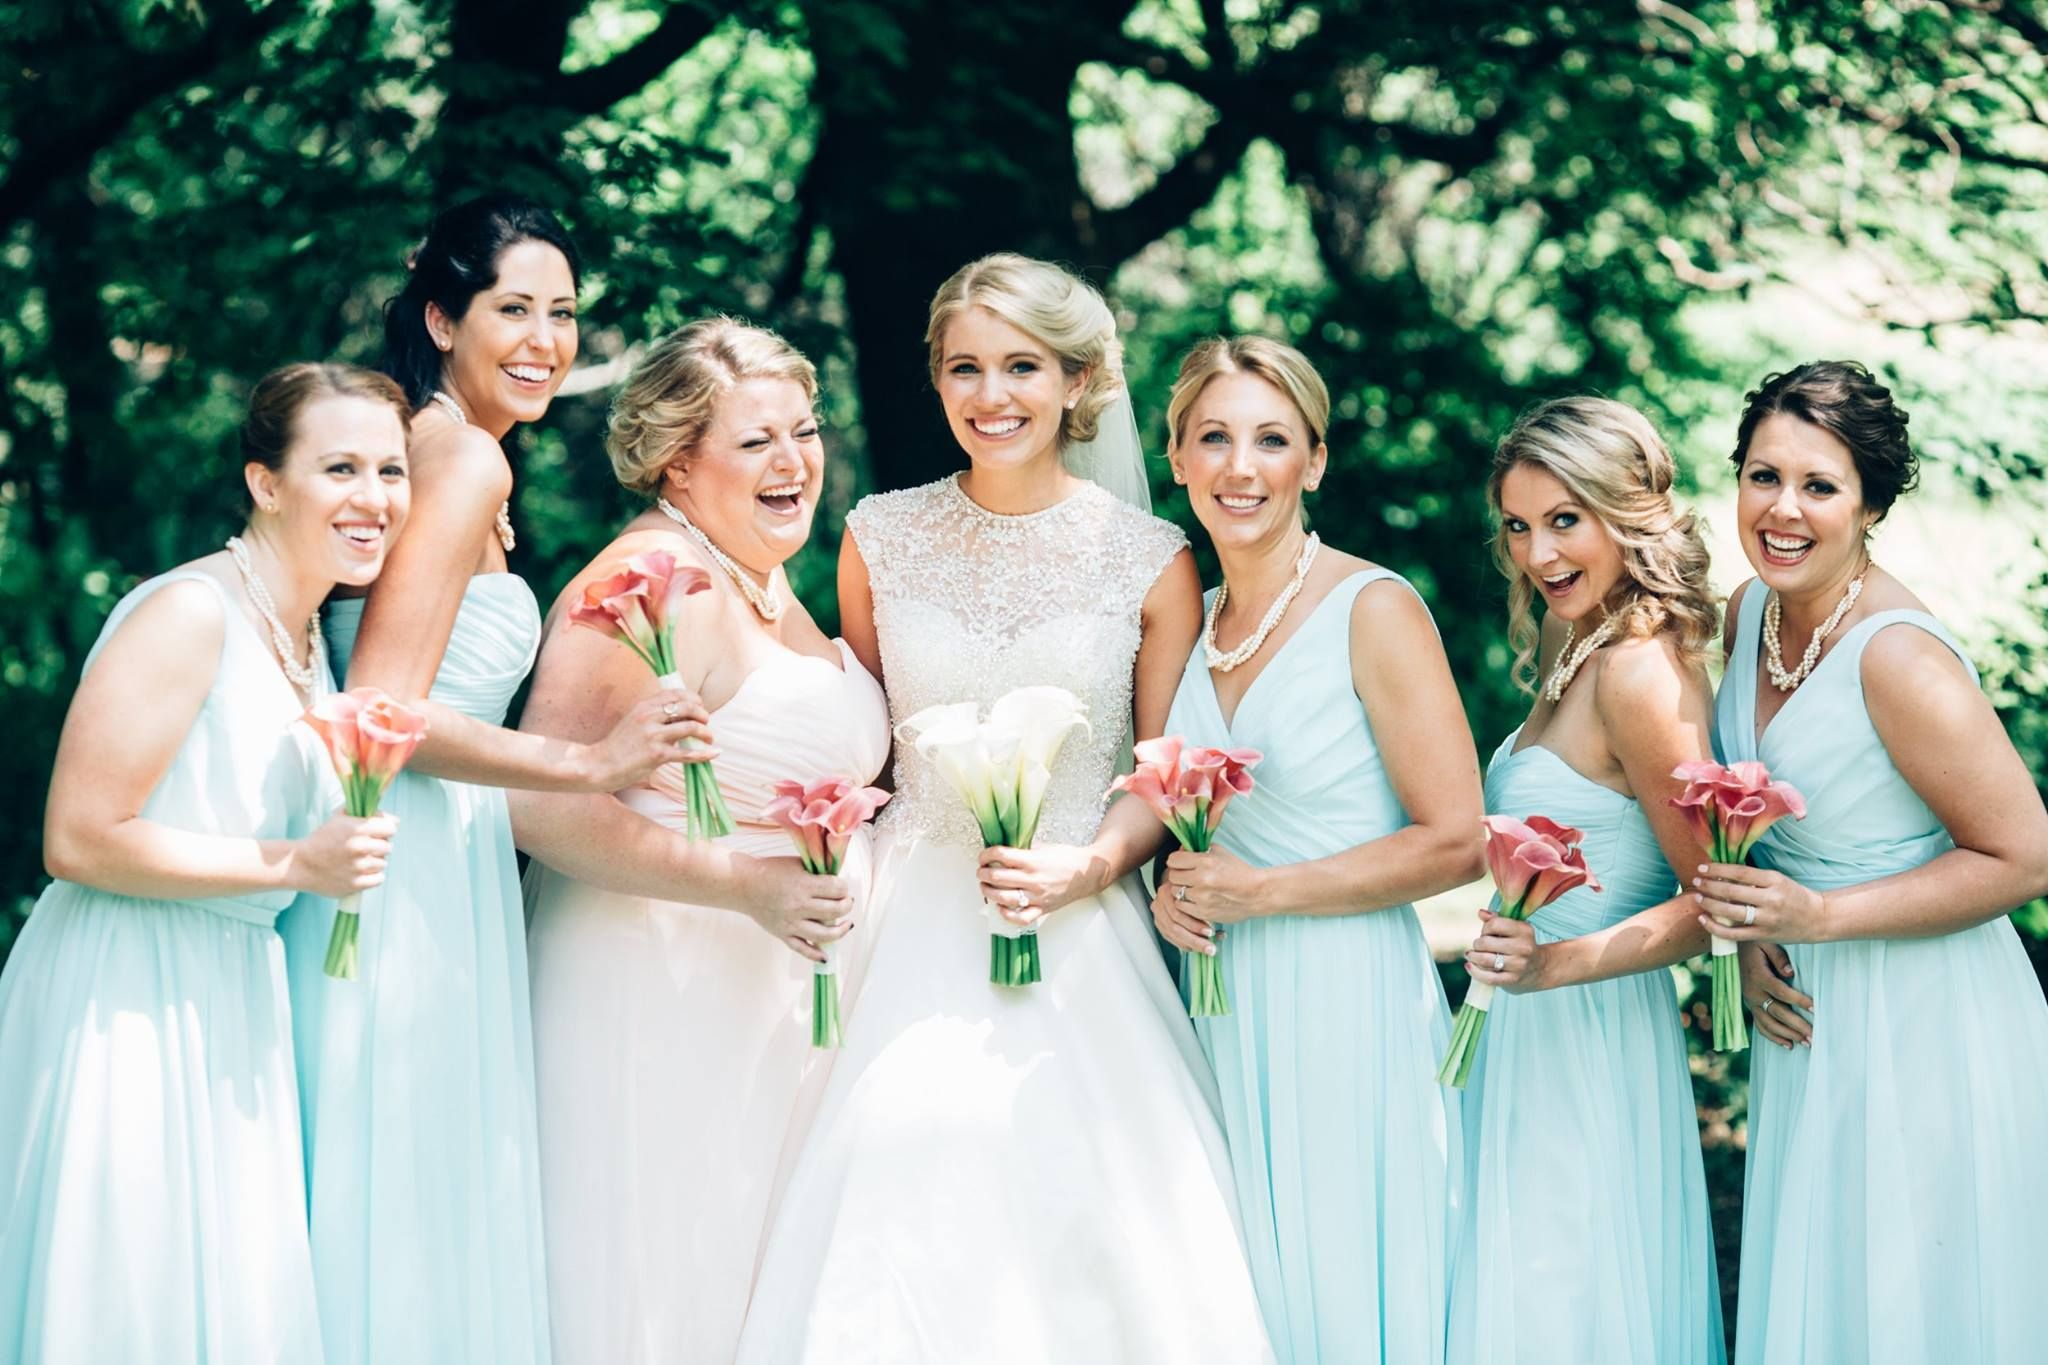 Mint blue bridesmaids look stunning in this outdoor wedding mint blue bridesmaids look stunning in this outdoor wedding kennedy blue bridesmaid dress anna ombrellifo Image collections